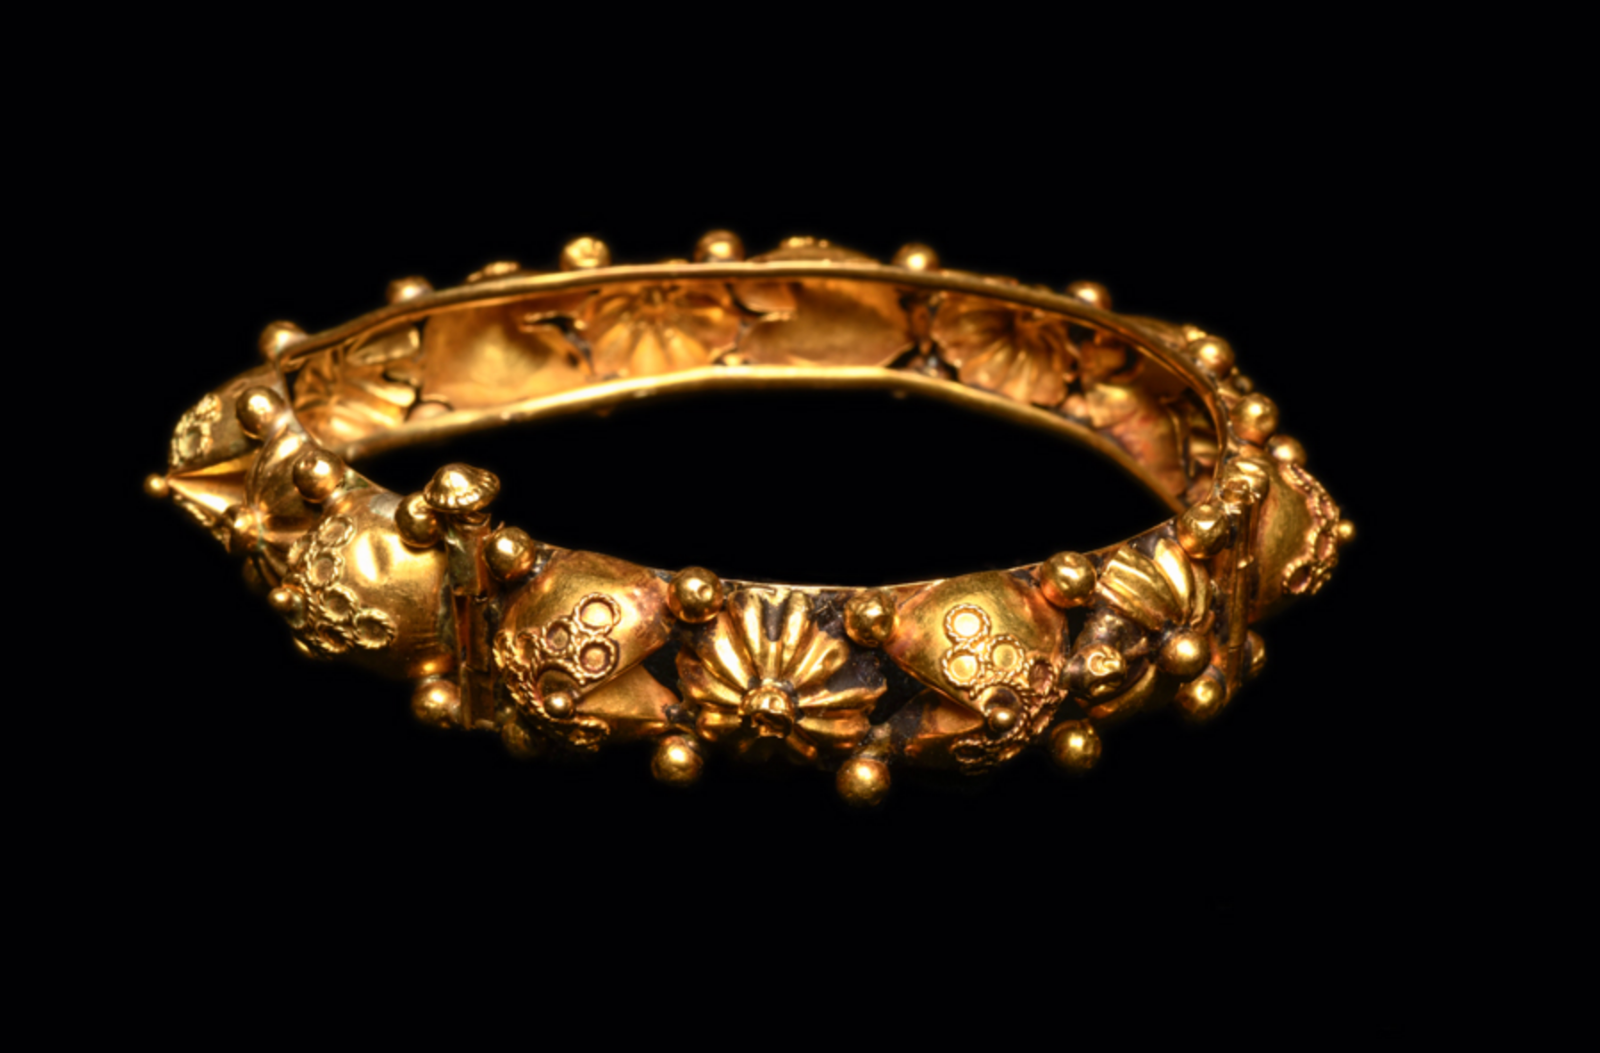 Ancient Byzantine Gold Bracelet Ca. 7th-12th century A.D. Medieval Jewelry 3